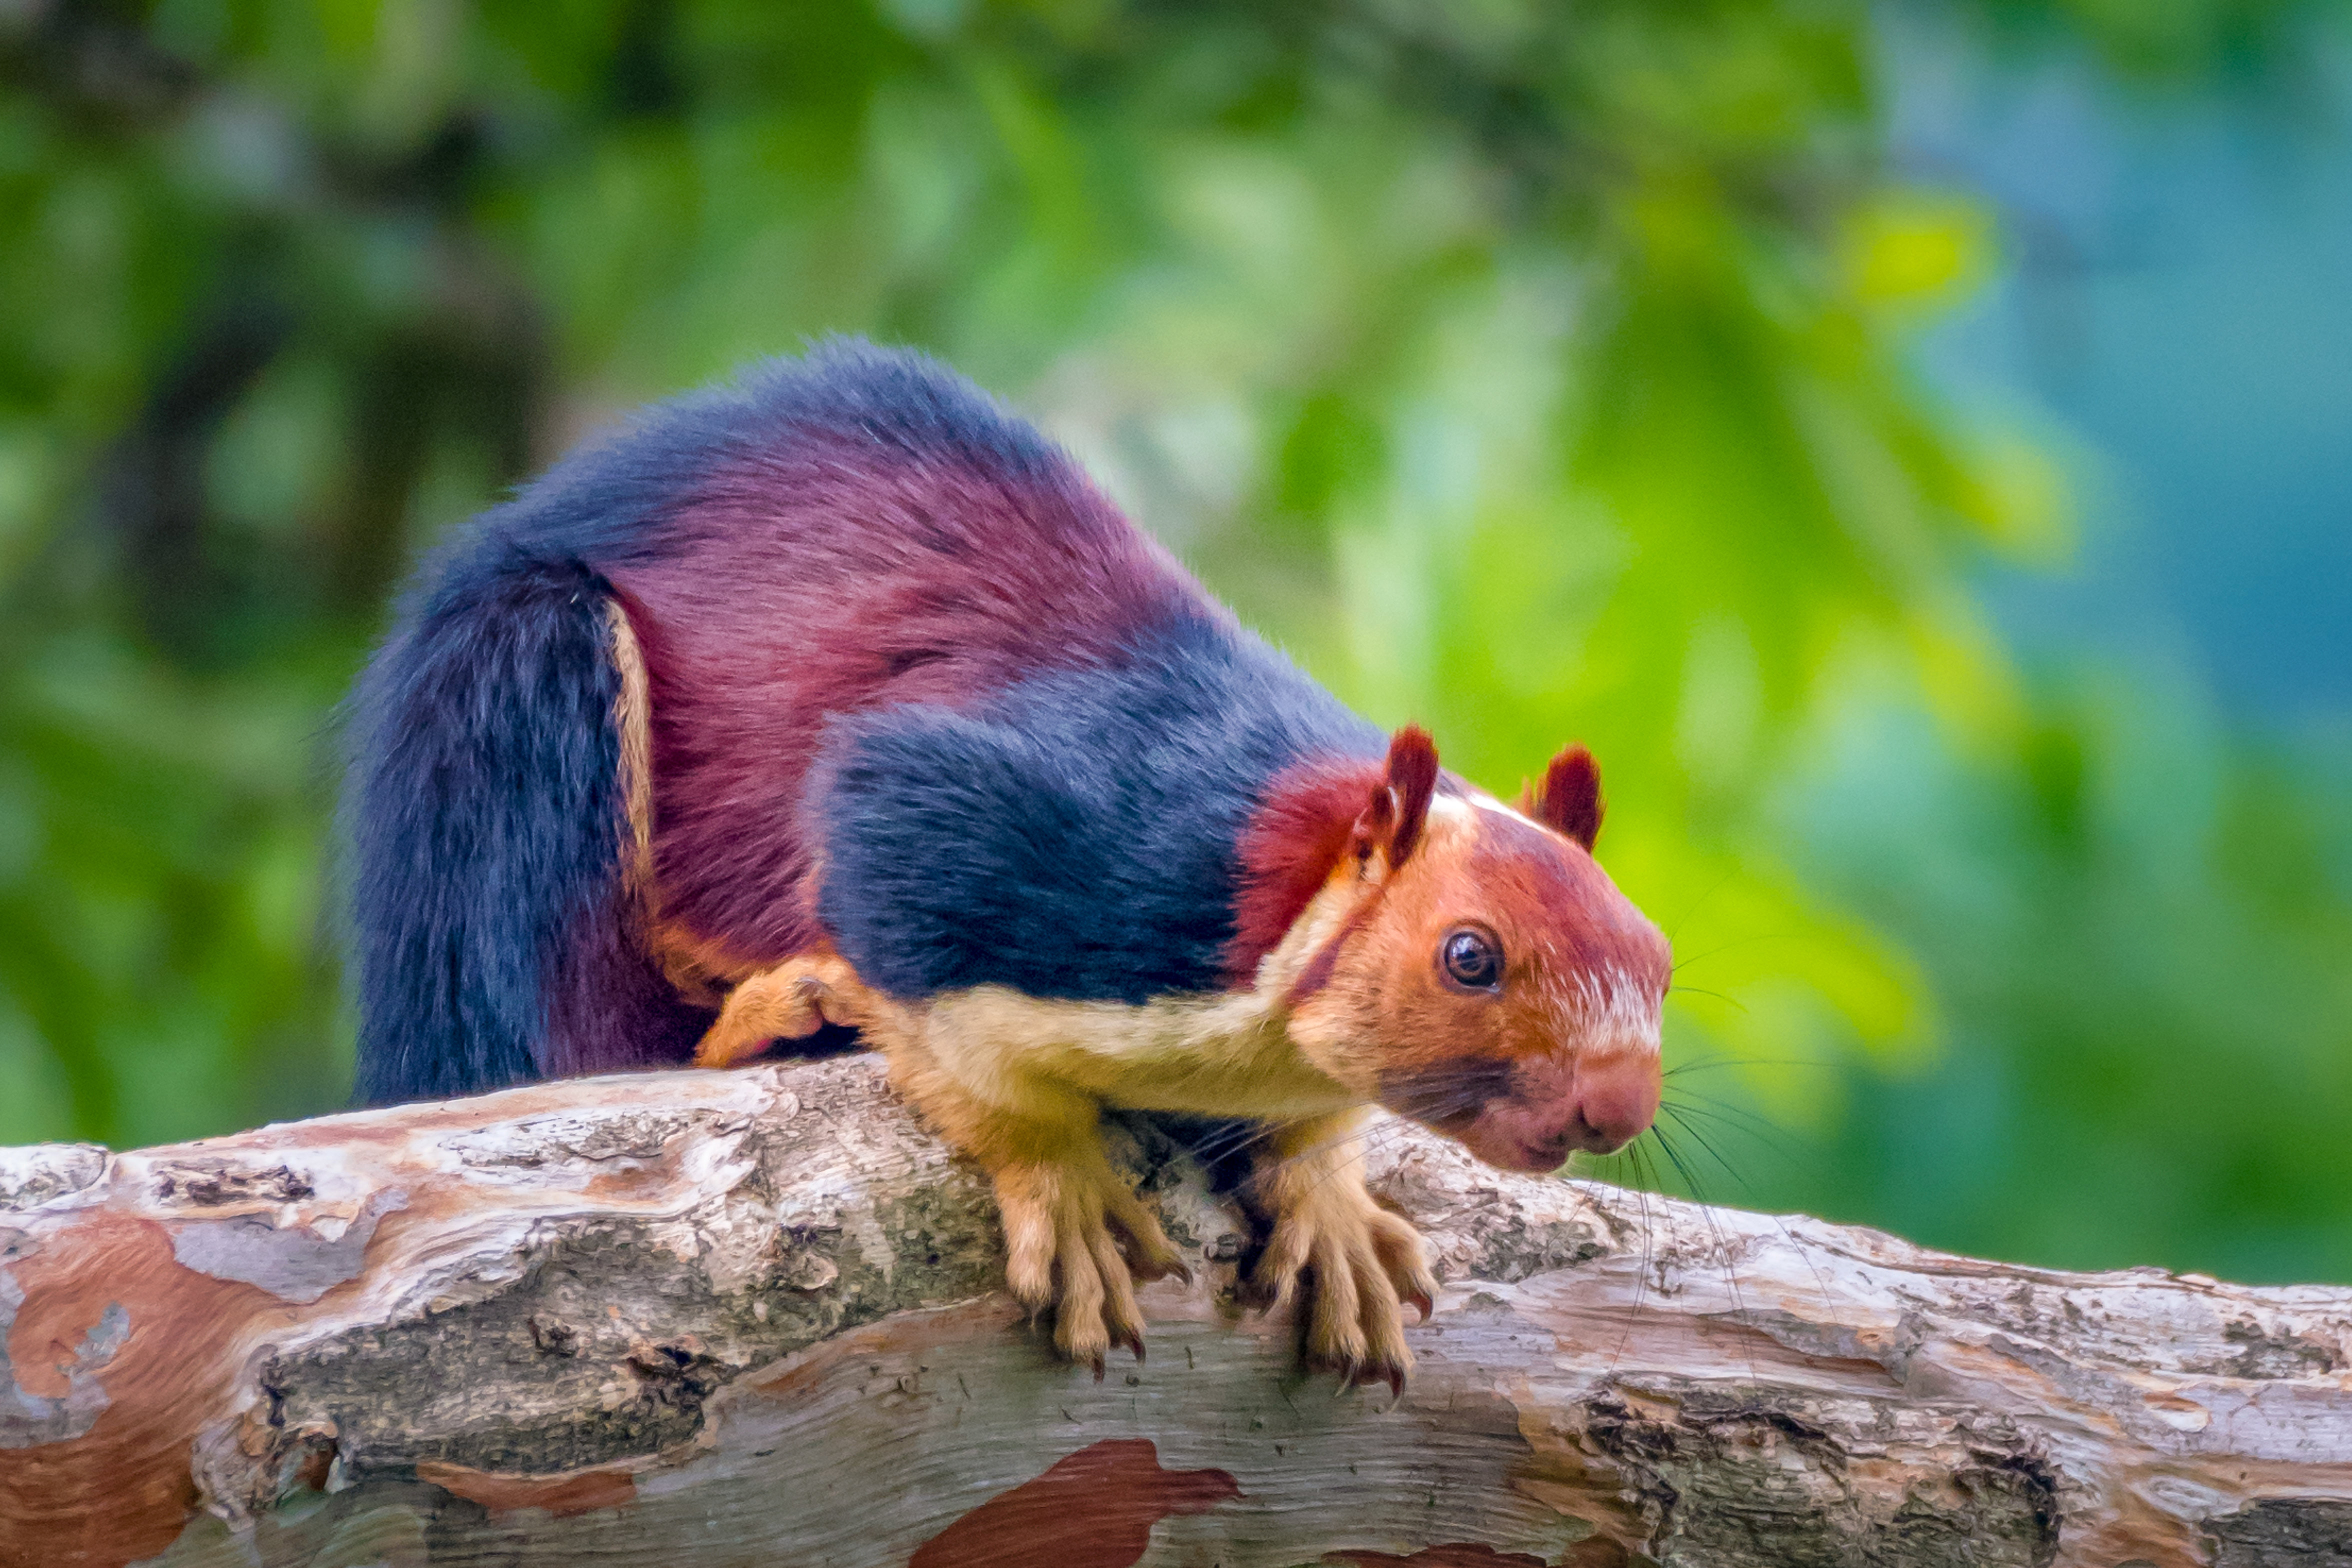 The squirrels measure up to 36 inches but can jump 20 foot. Credit: SWNS